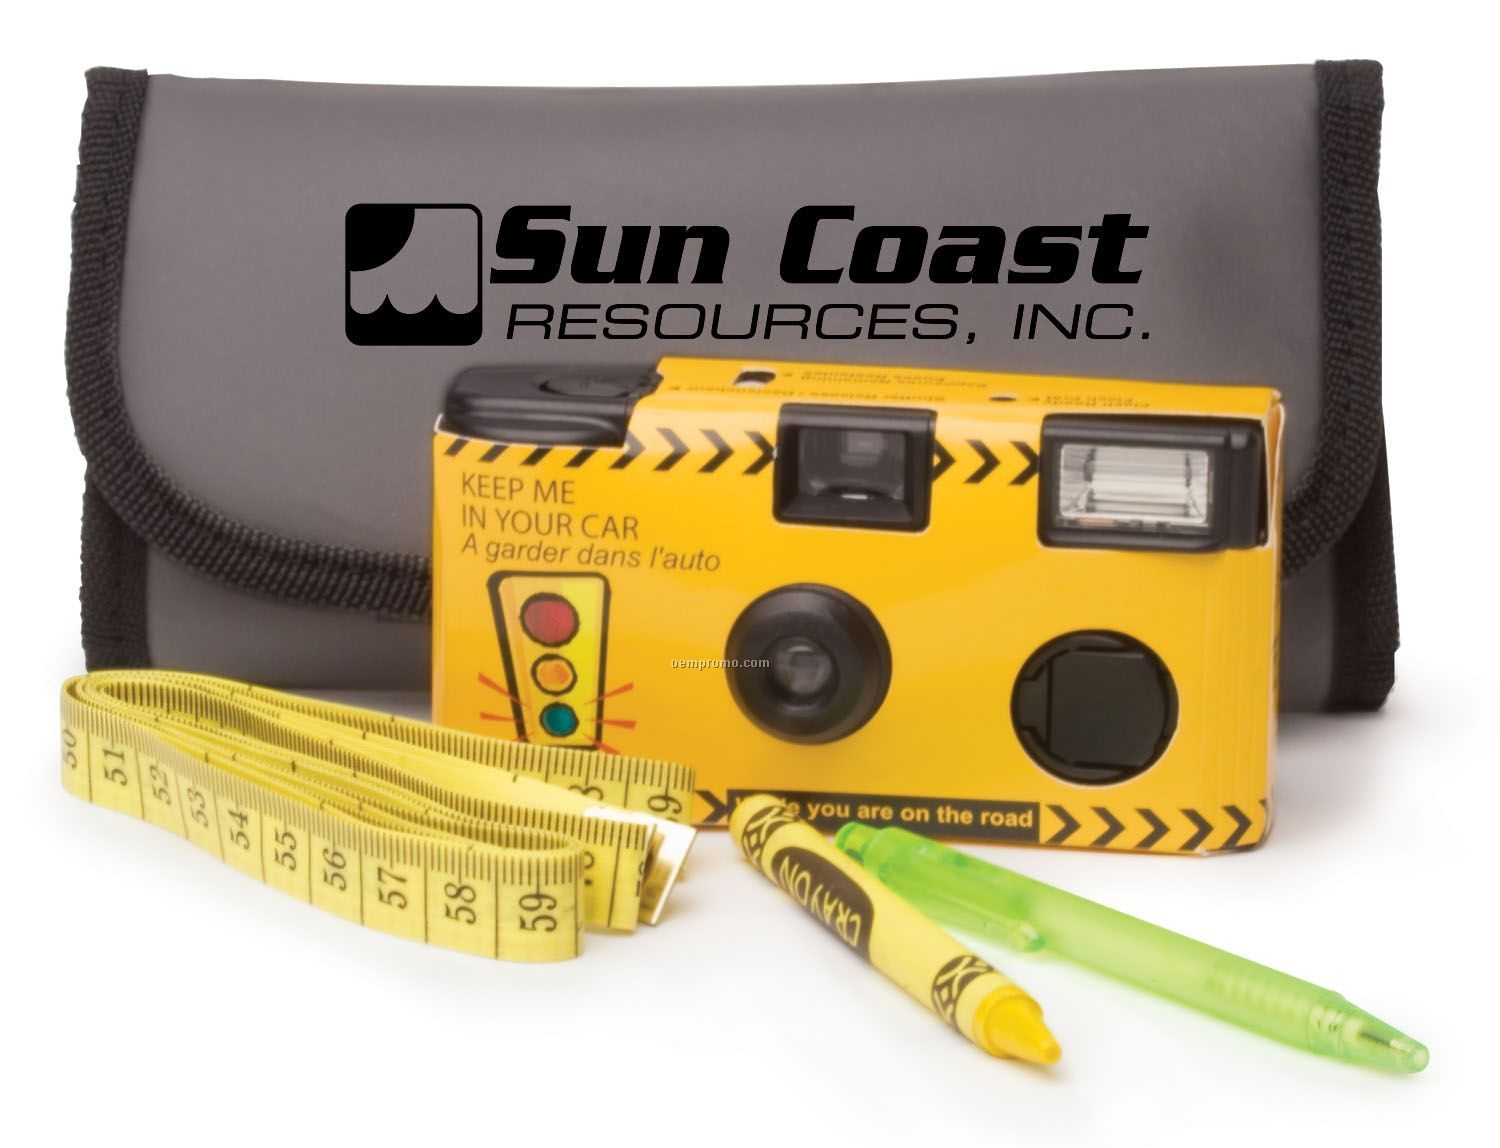 Accident Report Kit With Color Camera